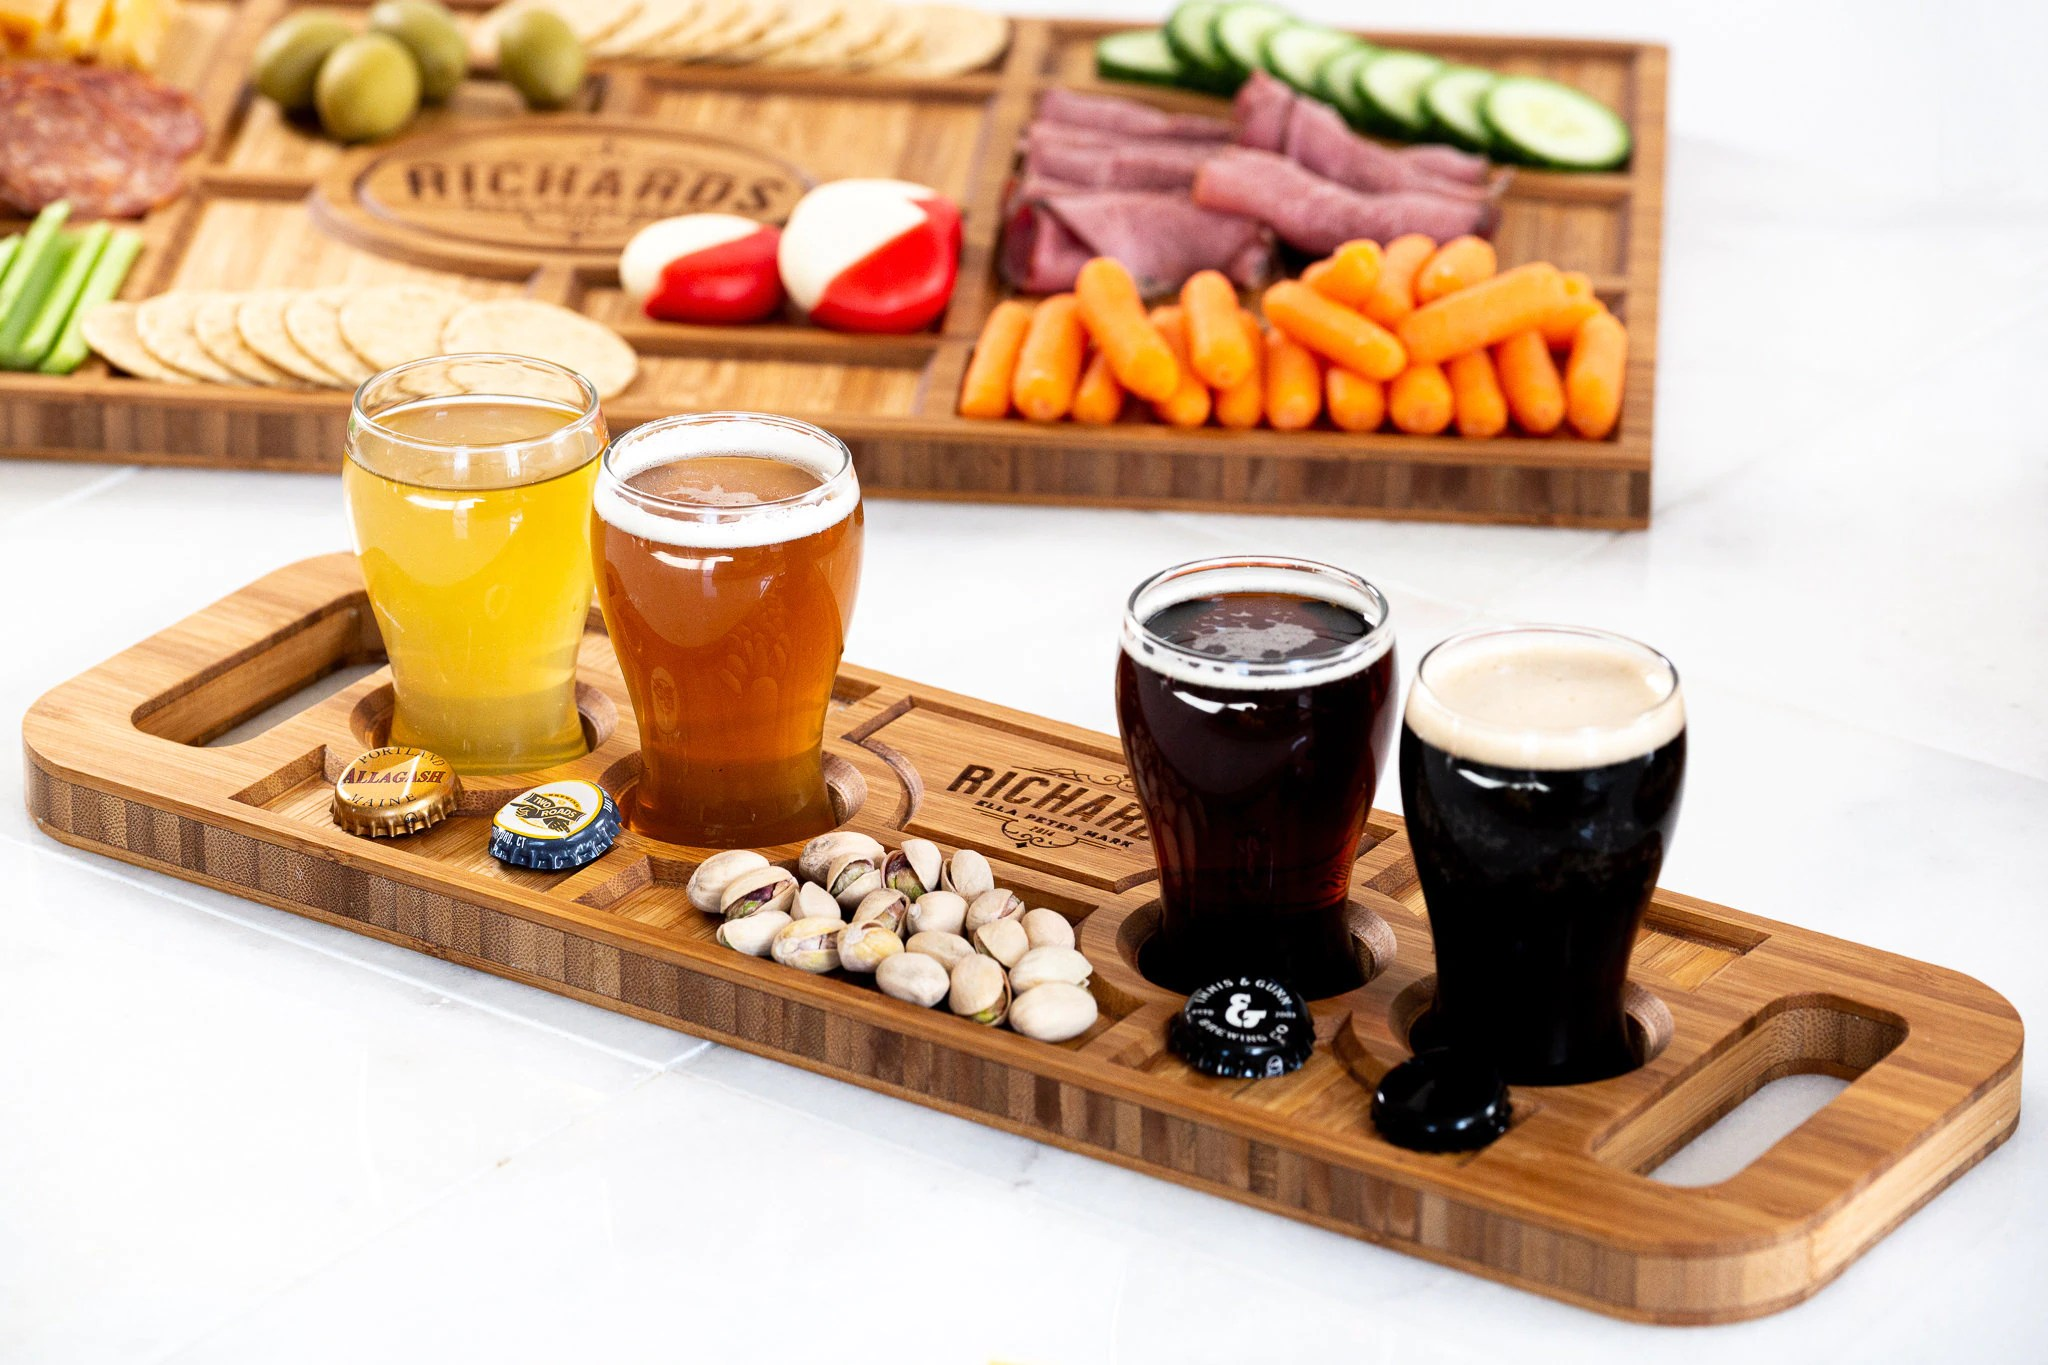 Personalized Charcuterie Planks and Beer Flights  4 Styles image 8